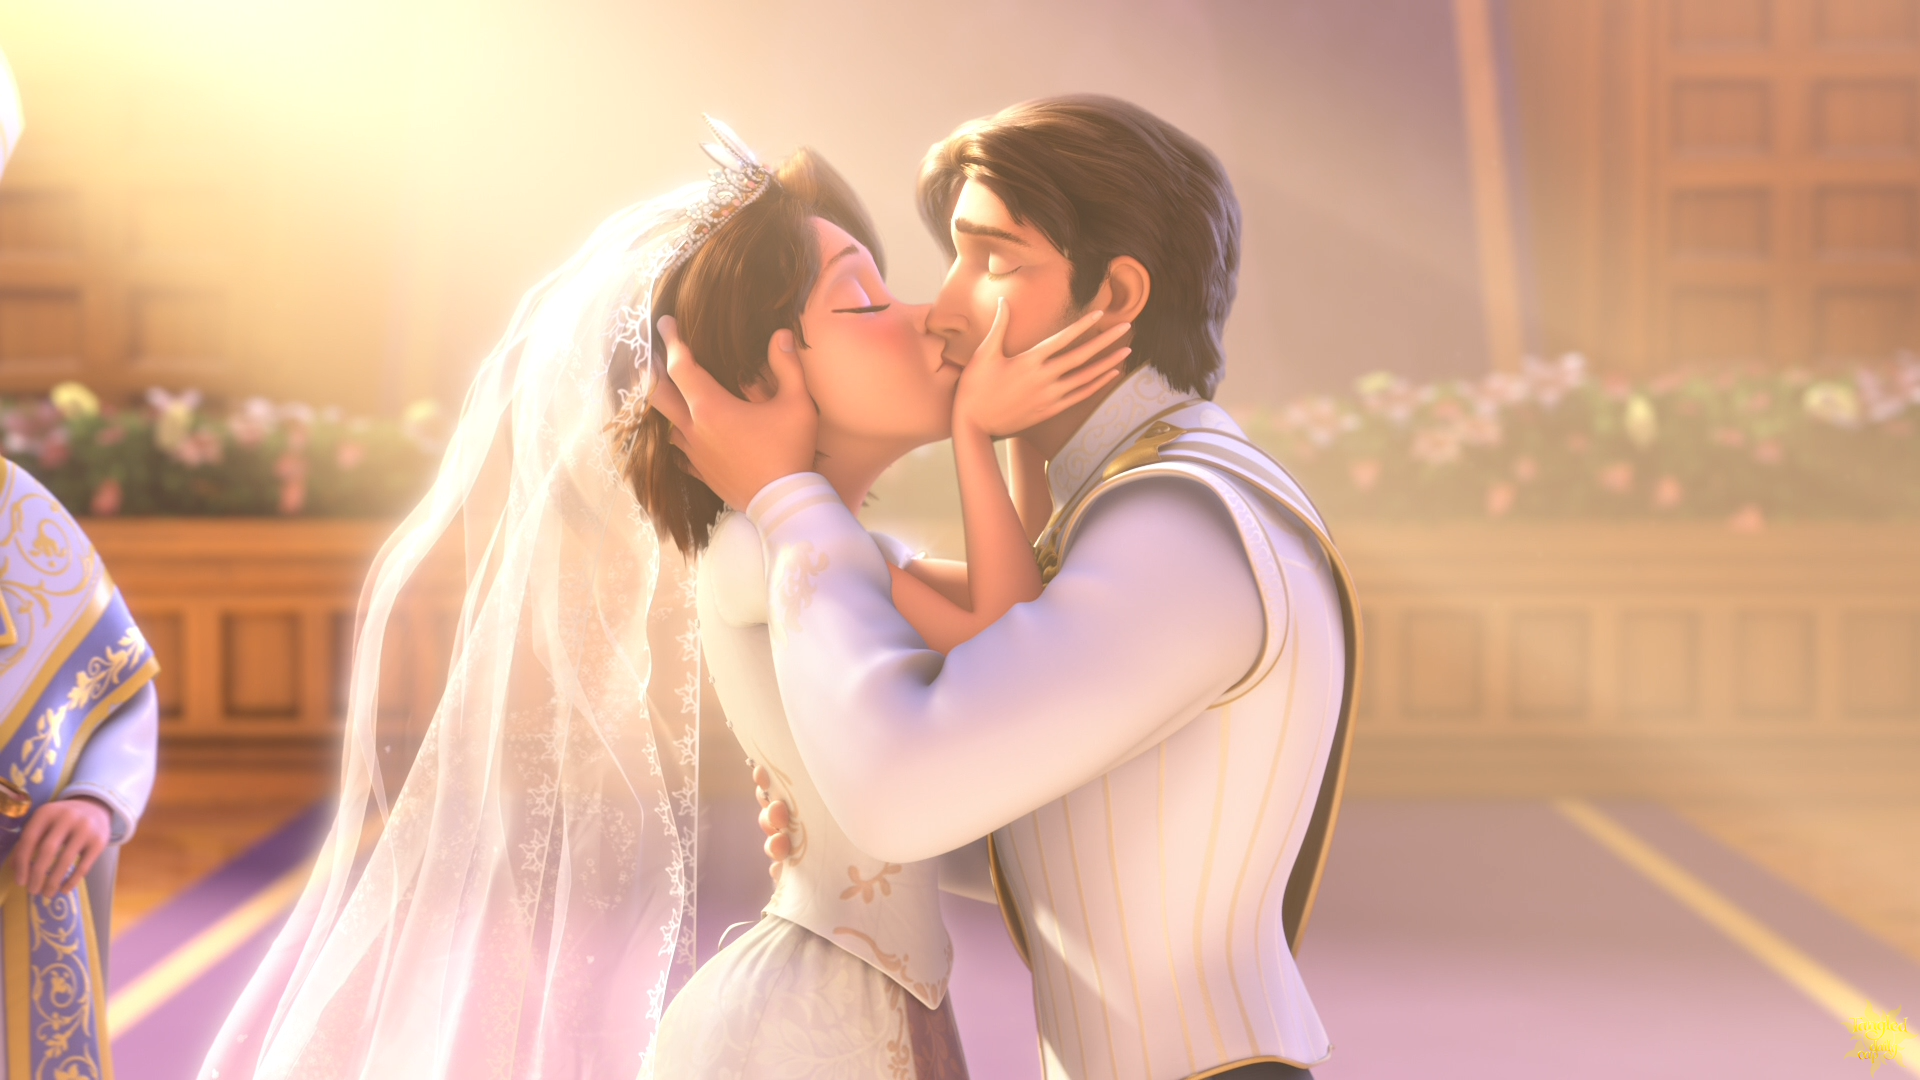 Which Disney Prince Will You Live Happily Ever After With